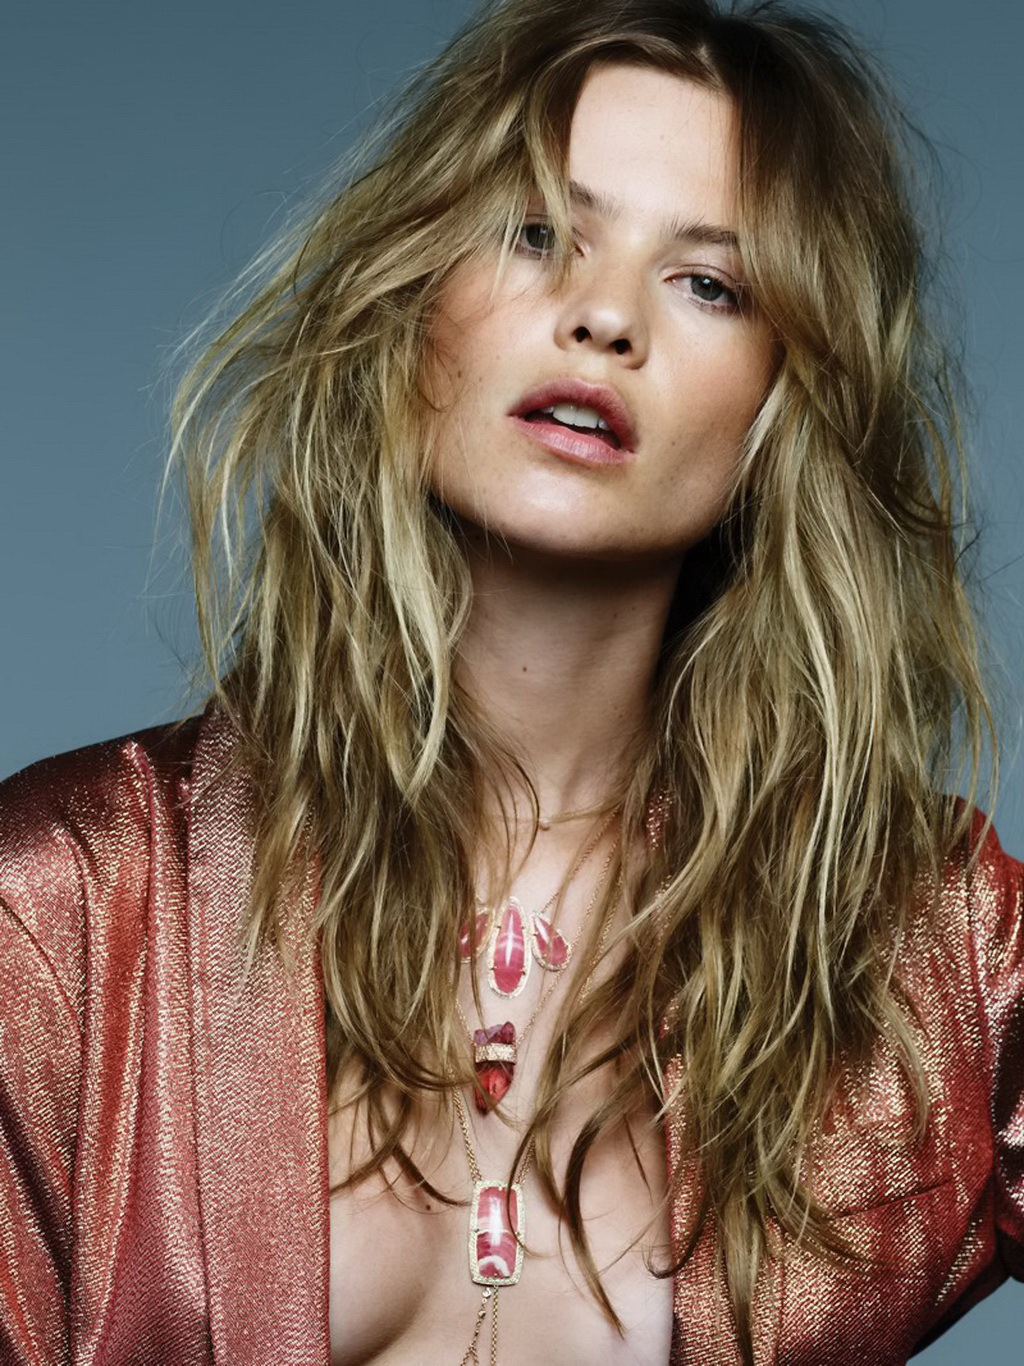 Behati Prinsloo Fronts Free People S June E Catalog: Behati Prinsloo Topless And See-through Photoshoot By